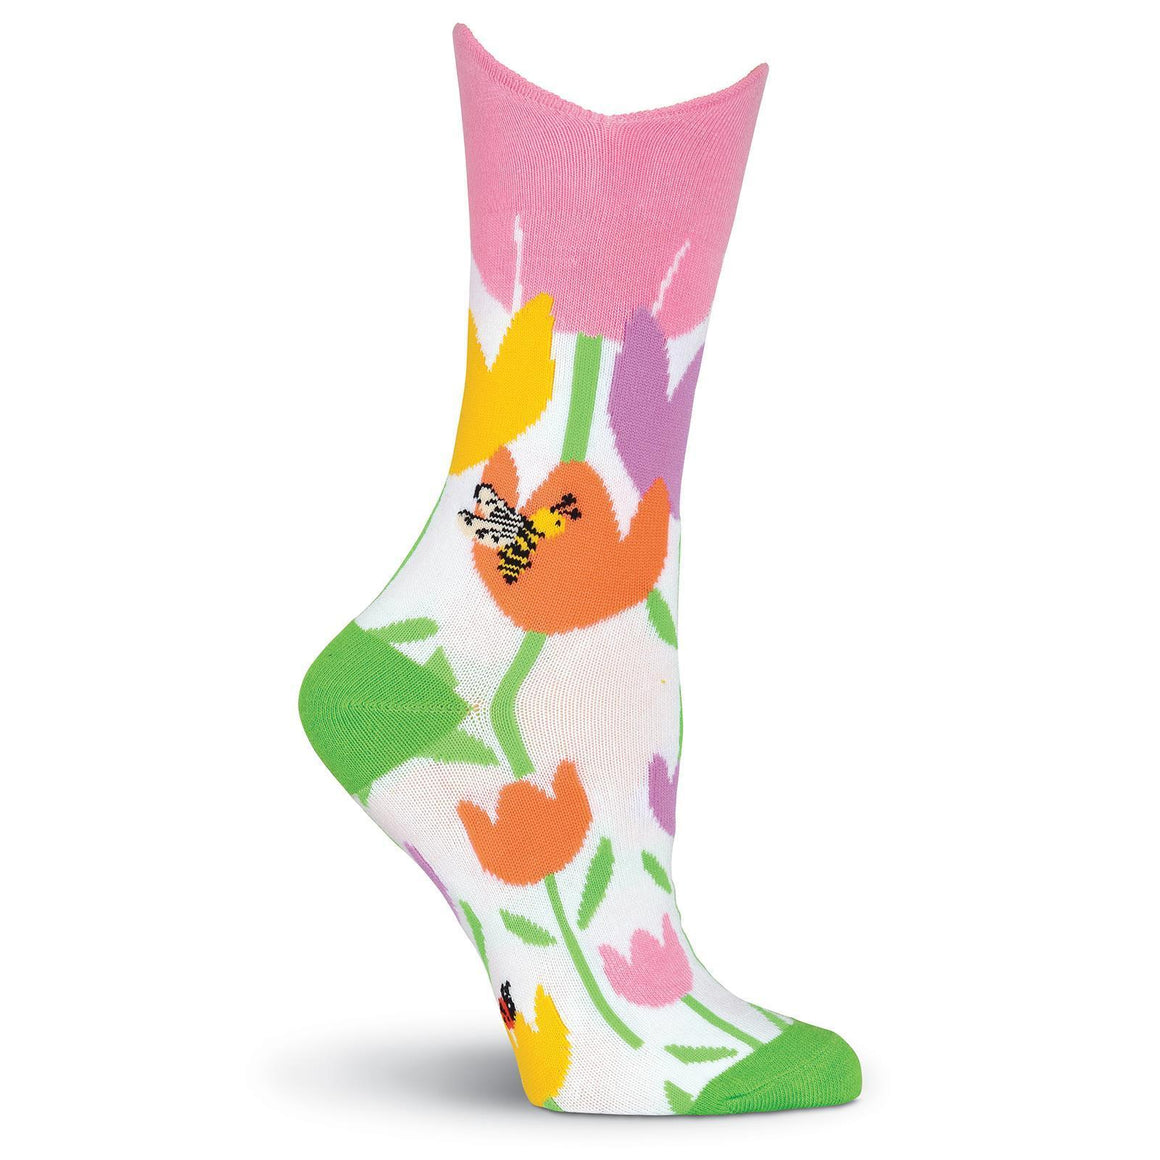 Wide Mouth Crew Socks - Wide Mouth Tulips Crew Socks